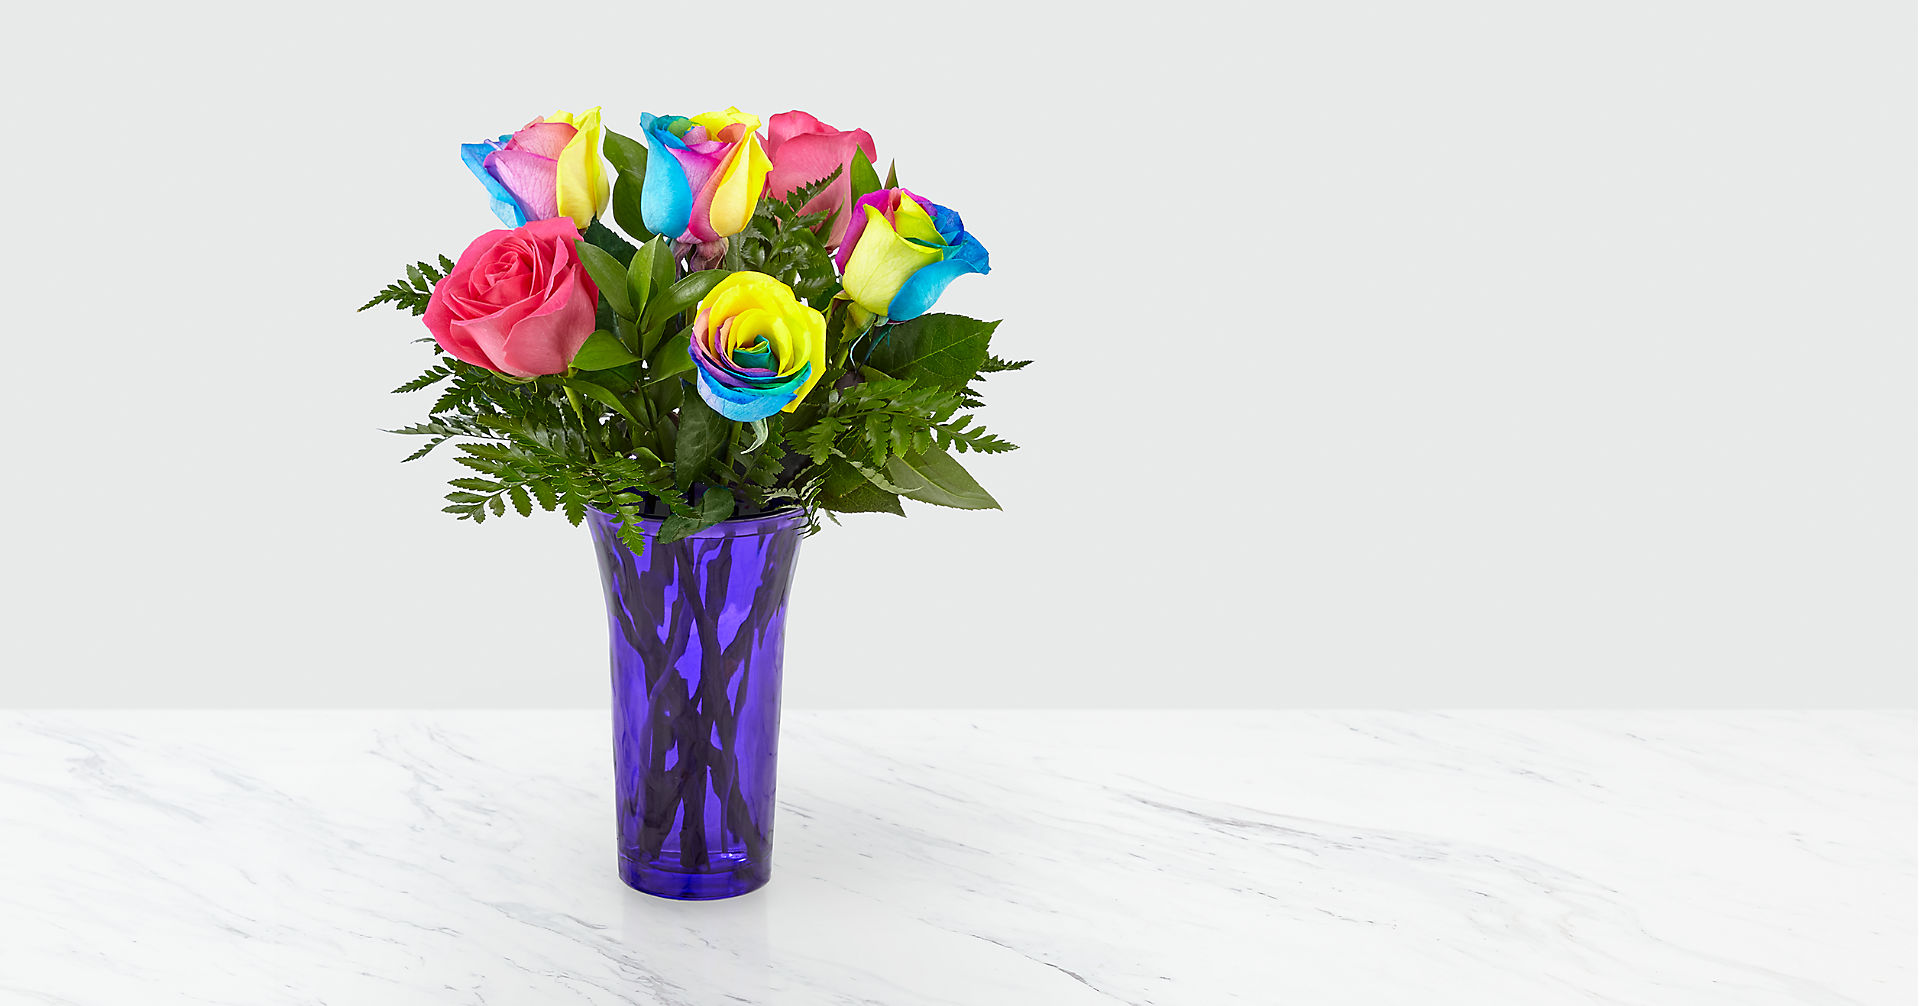 Time to Celebrate Rainbow Rose Bouquet - 6 Stems - VASE INCLUDED - Image 2 Of 5